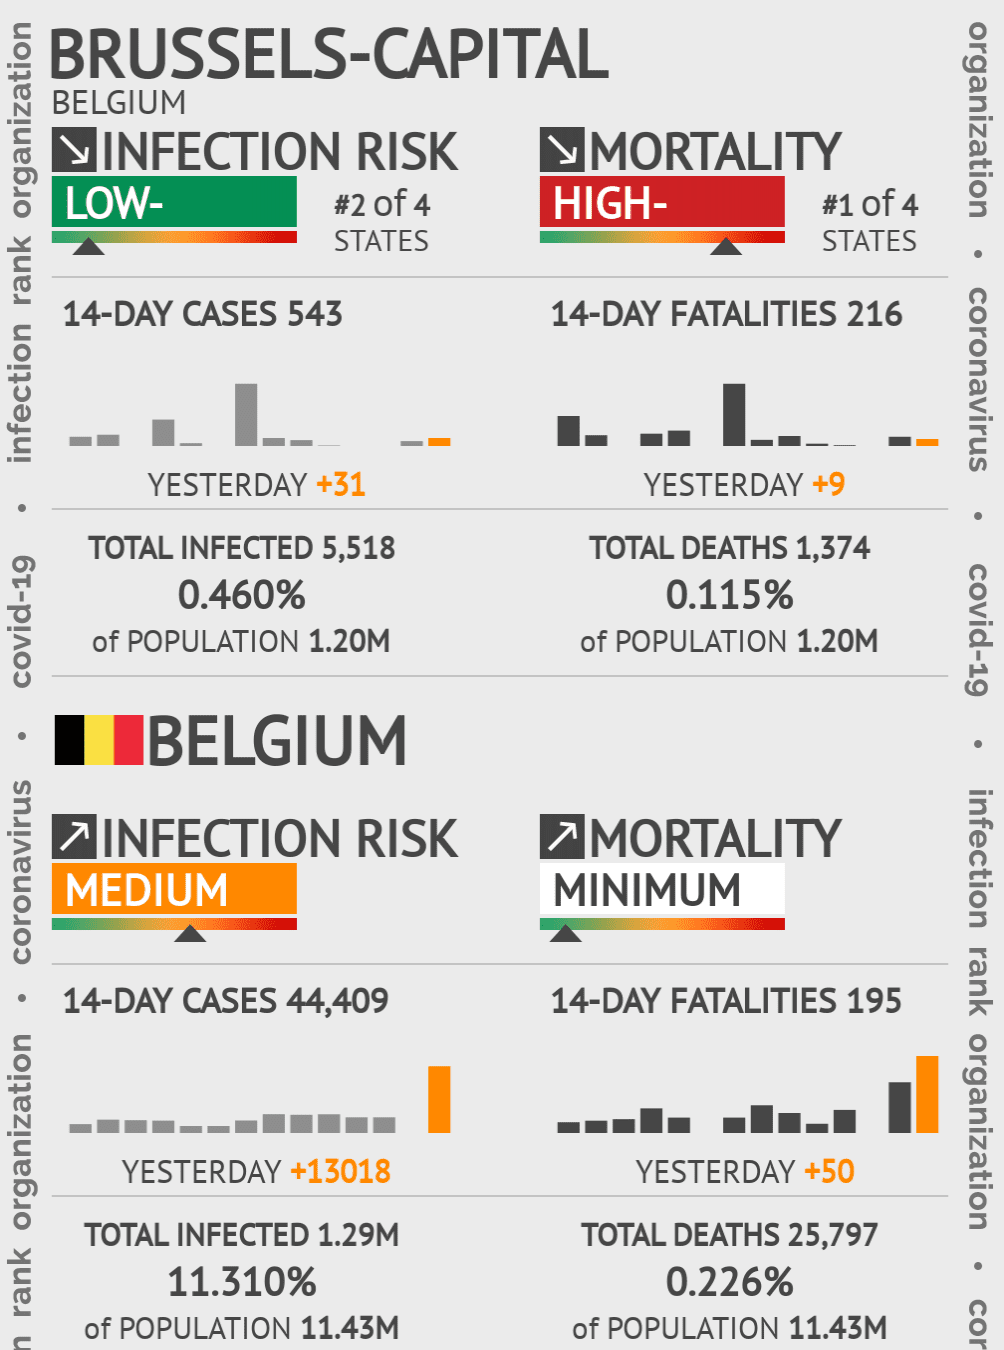 Brussels-Capital Coronavirus Covid-19 Risk of Infection Update for 1 Counties on May 14, 2020